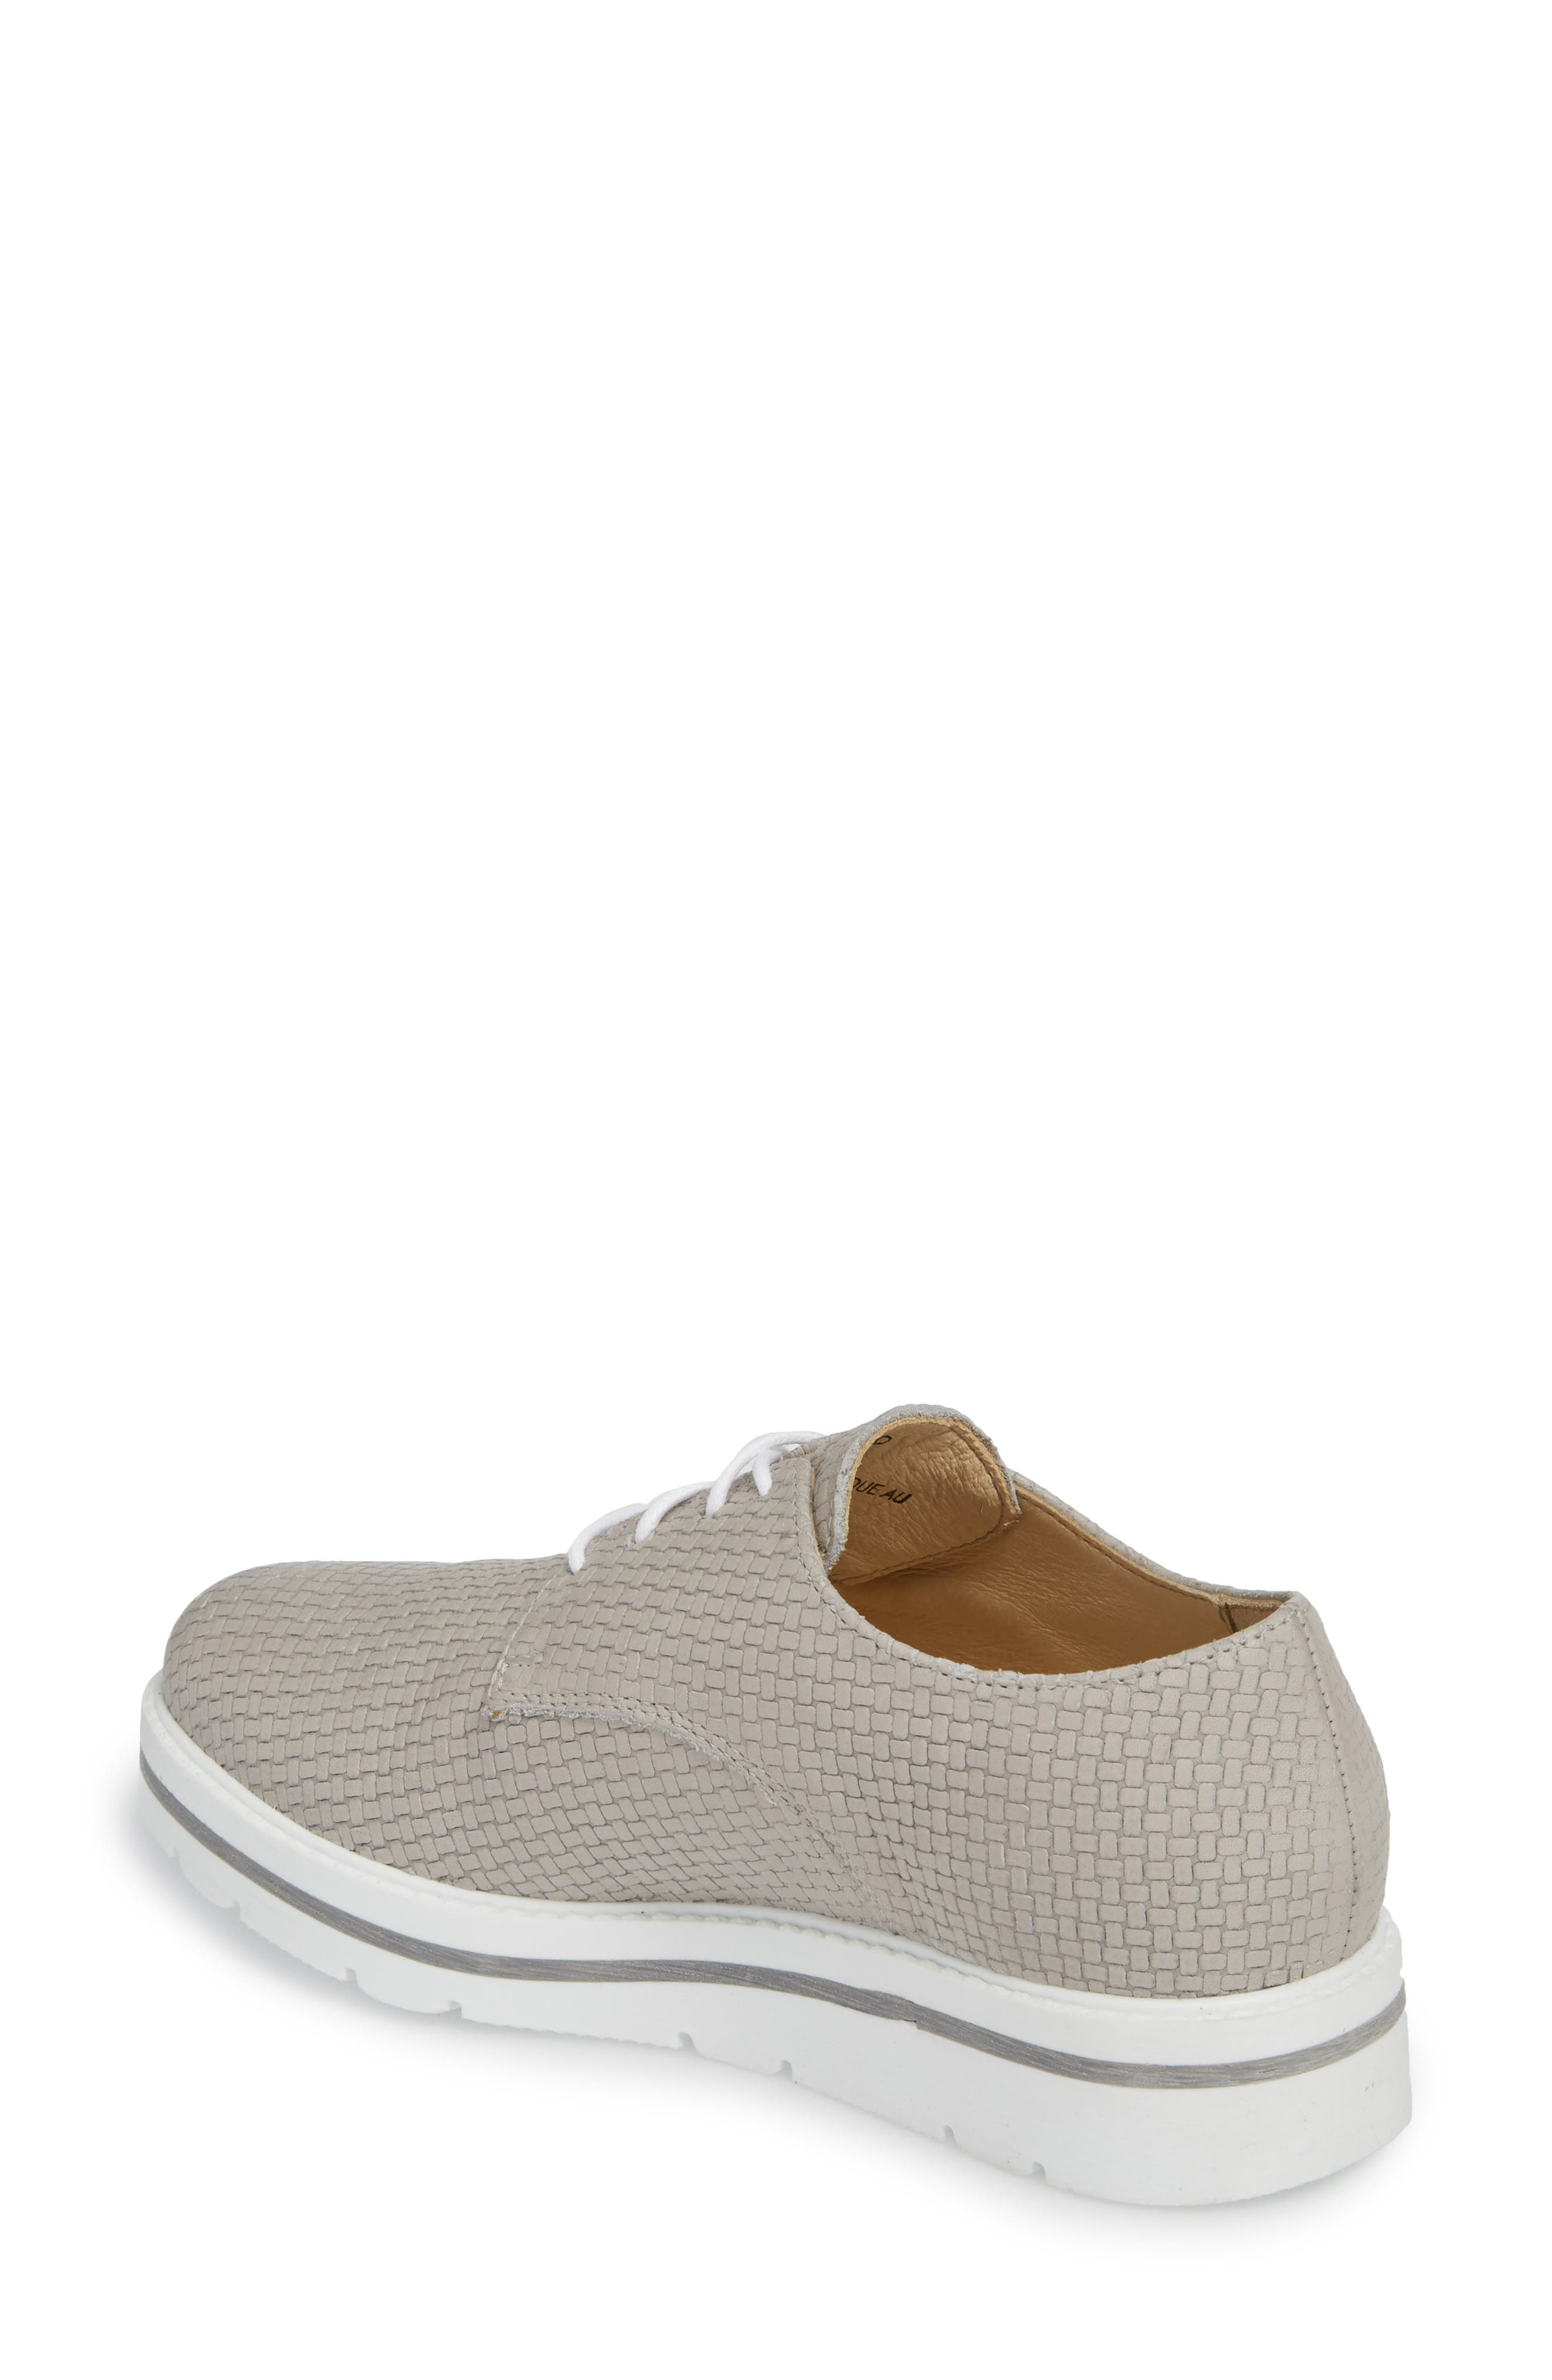 Lando Sneaker Derby,                             Alternate thumbnail 2, color,                             Light Grey Sauvage Leather